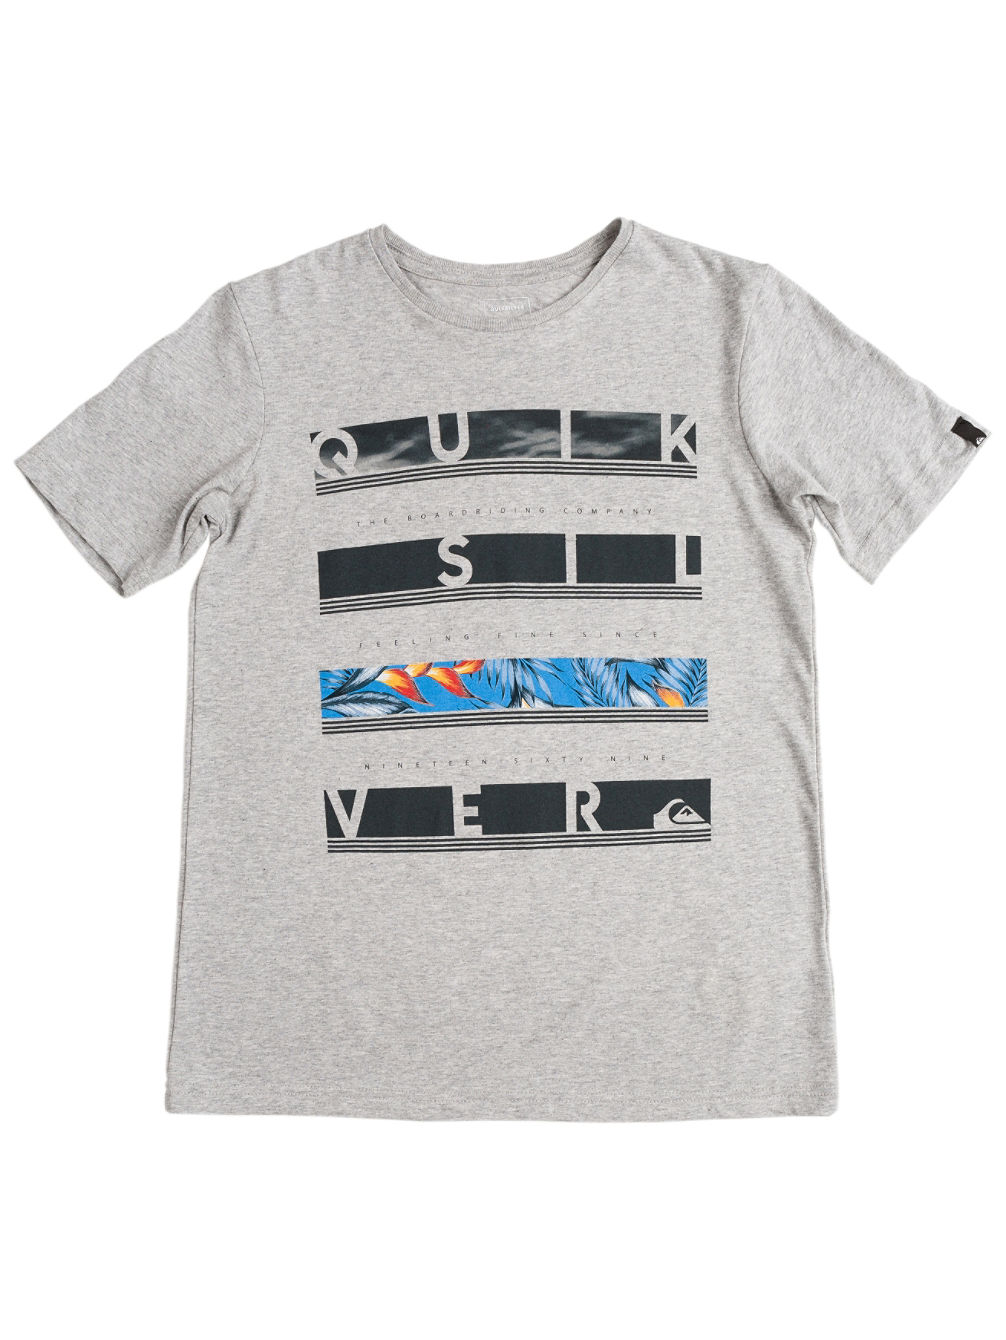 quiksilver-read-betwee-t-shirt-boys